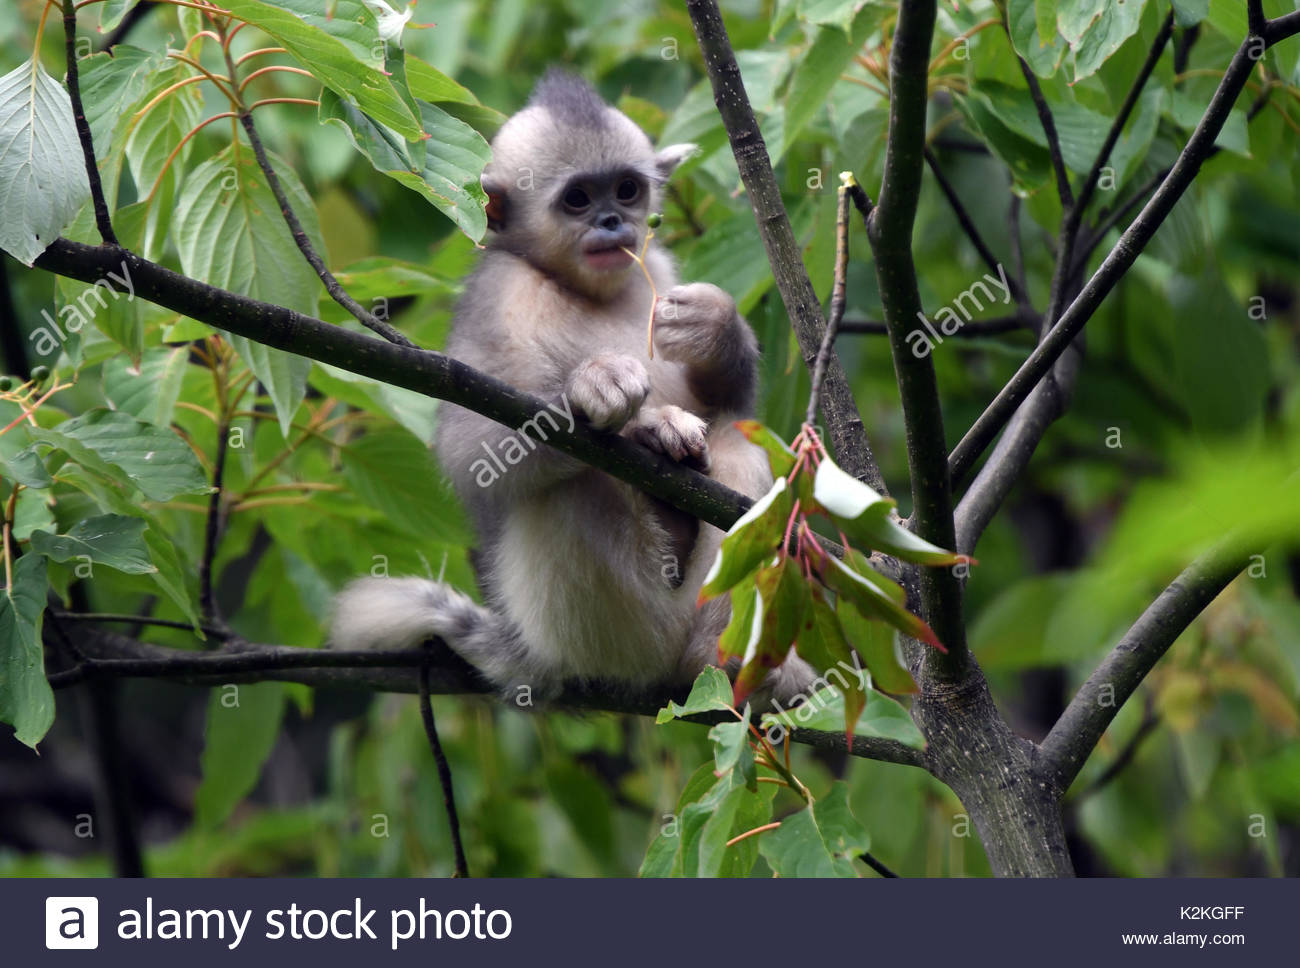 China. 27th Aug, 2017. A snub-nosed monkey rests in a tree at Snub-nosed Monkey National Park in southwest China's Yunnan Province, on August 27, 2017. Covering an area of 125 square kilometers, the national park now has more than 60 rare snub-nosed monkeys. Credit: TopPhoto/Alamy Live News - Stock Image